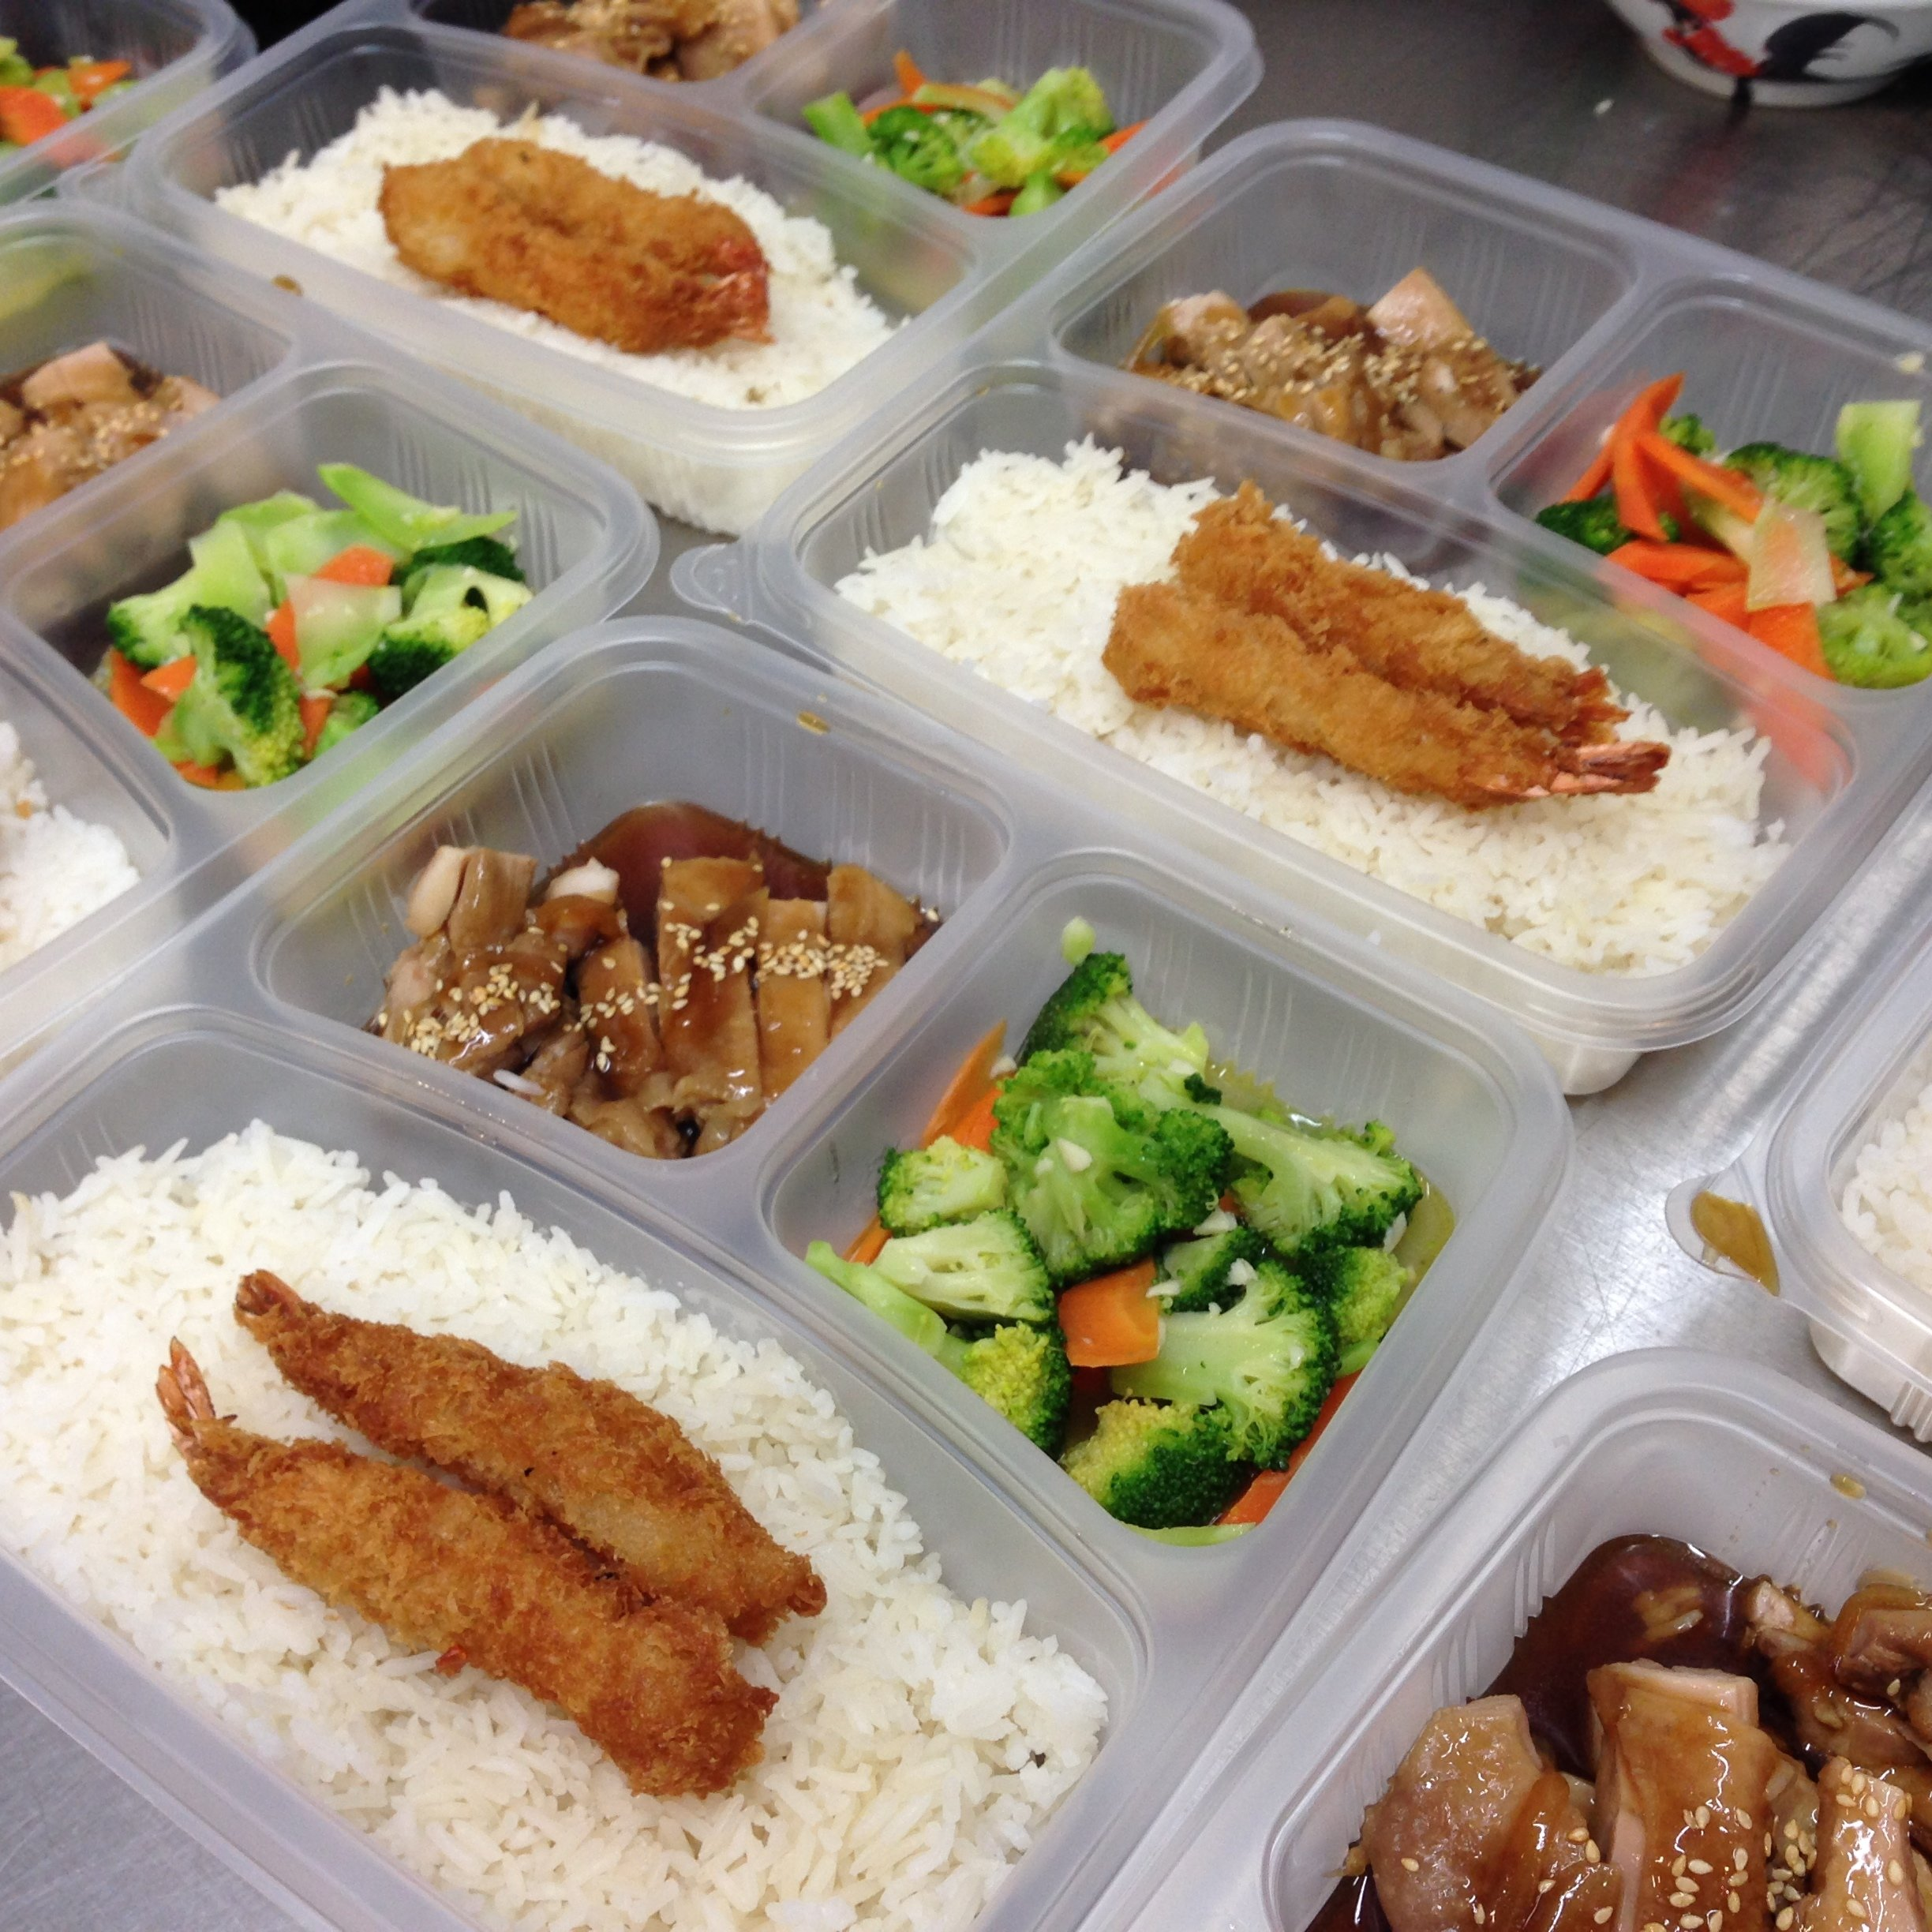 Favourite Lunch Box Catering Favourite Lunch Box Catering